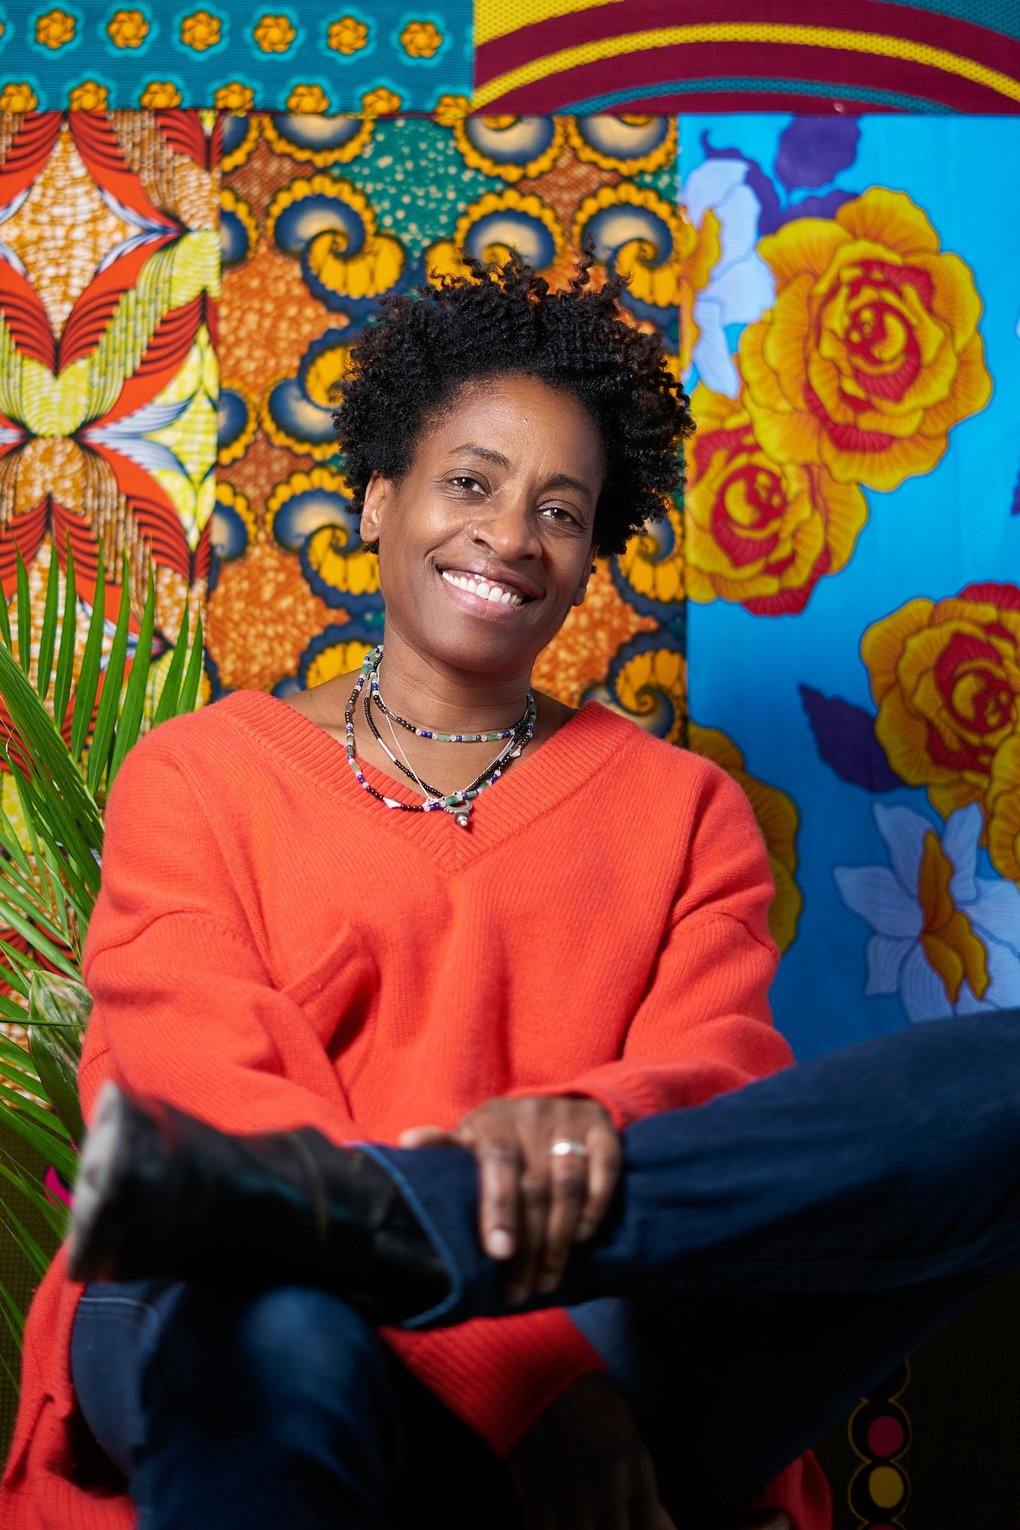 """Jacqueline Woodson, author of """"Red at the Bone,"""" will speak at Seattle Public Library's Central Library on Sept. 24. (Tiffany A. Bloomfield)"""